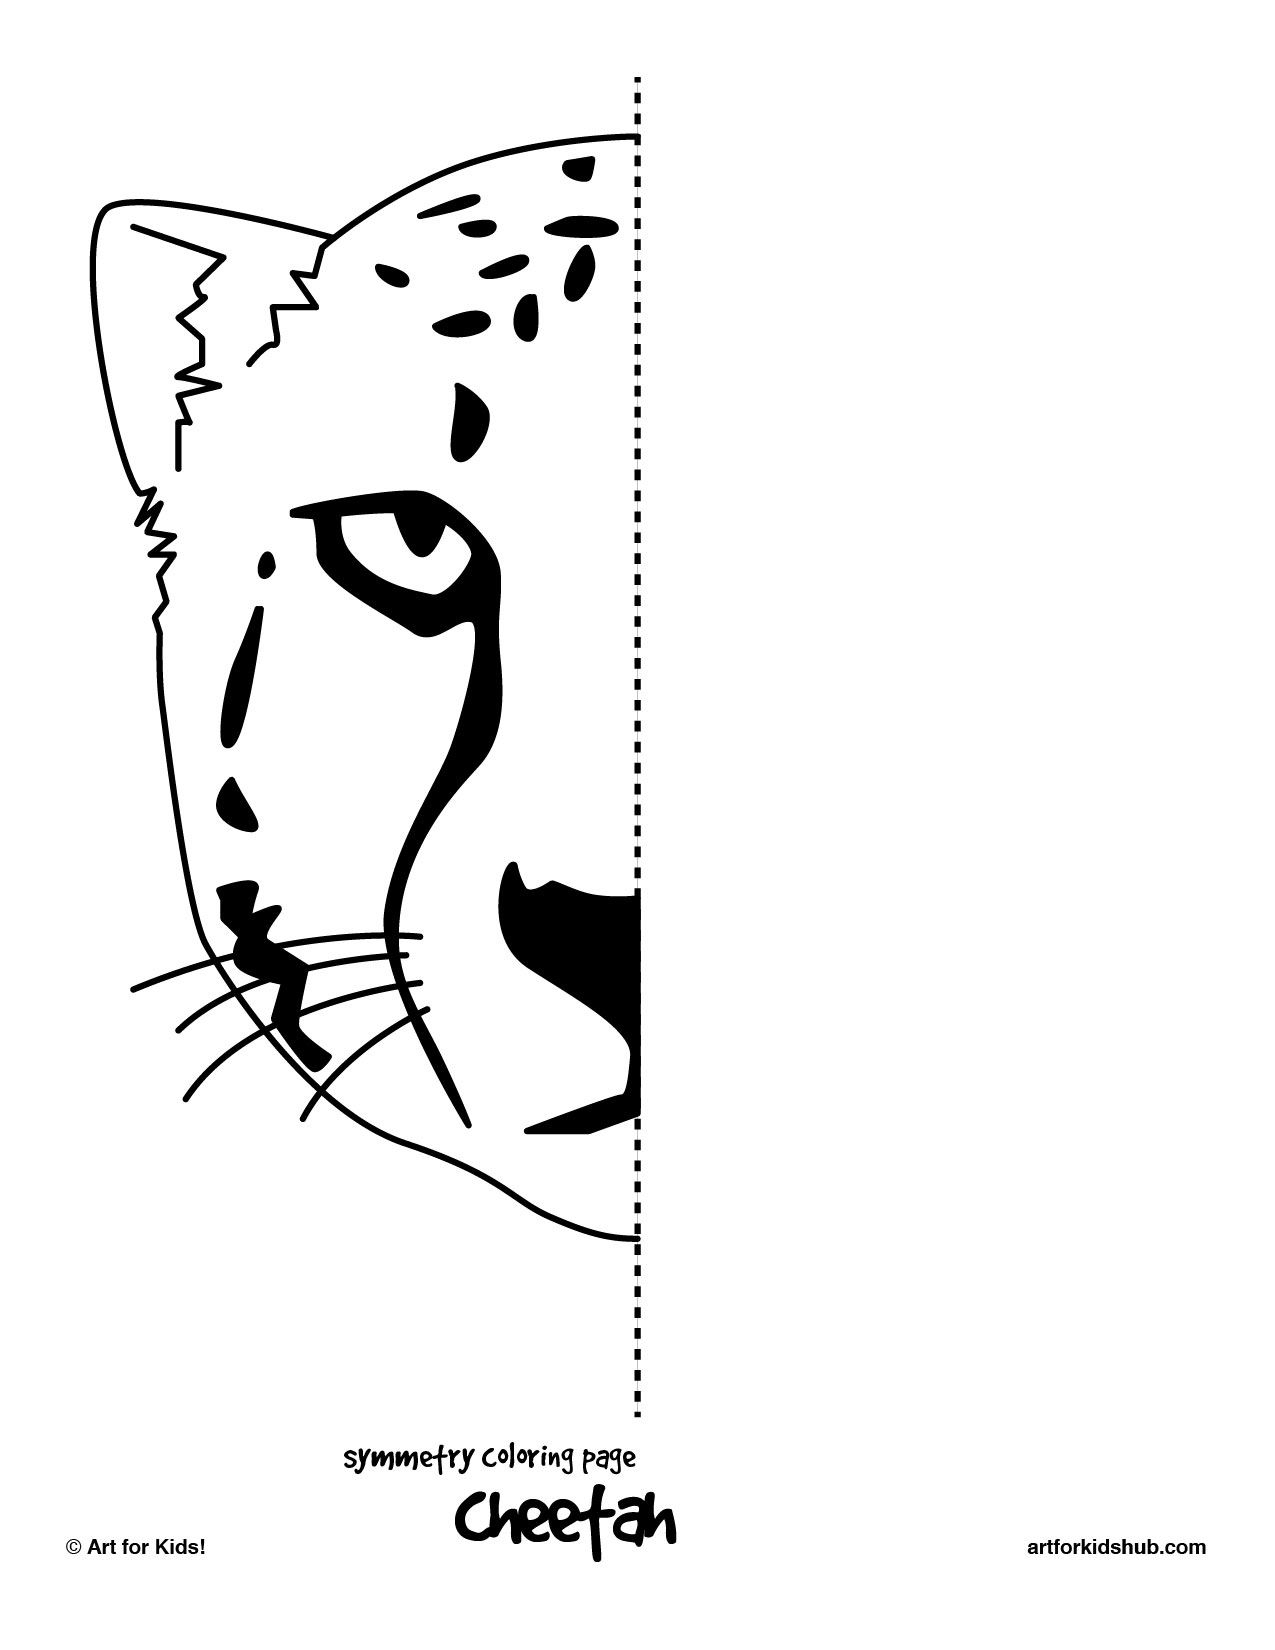 symmetry colouring sheets 7 best images of symmetrical drawing pages printable sheets colouring symmetry